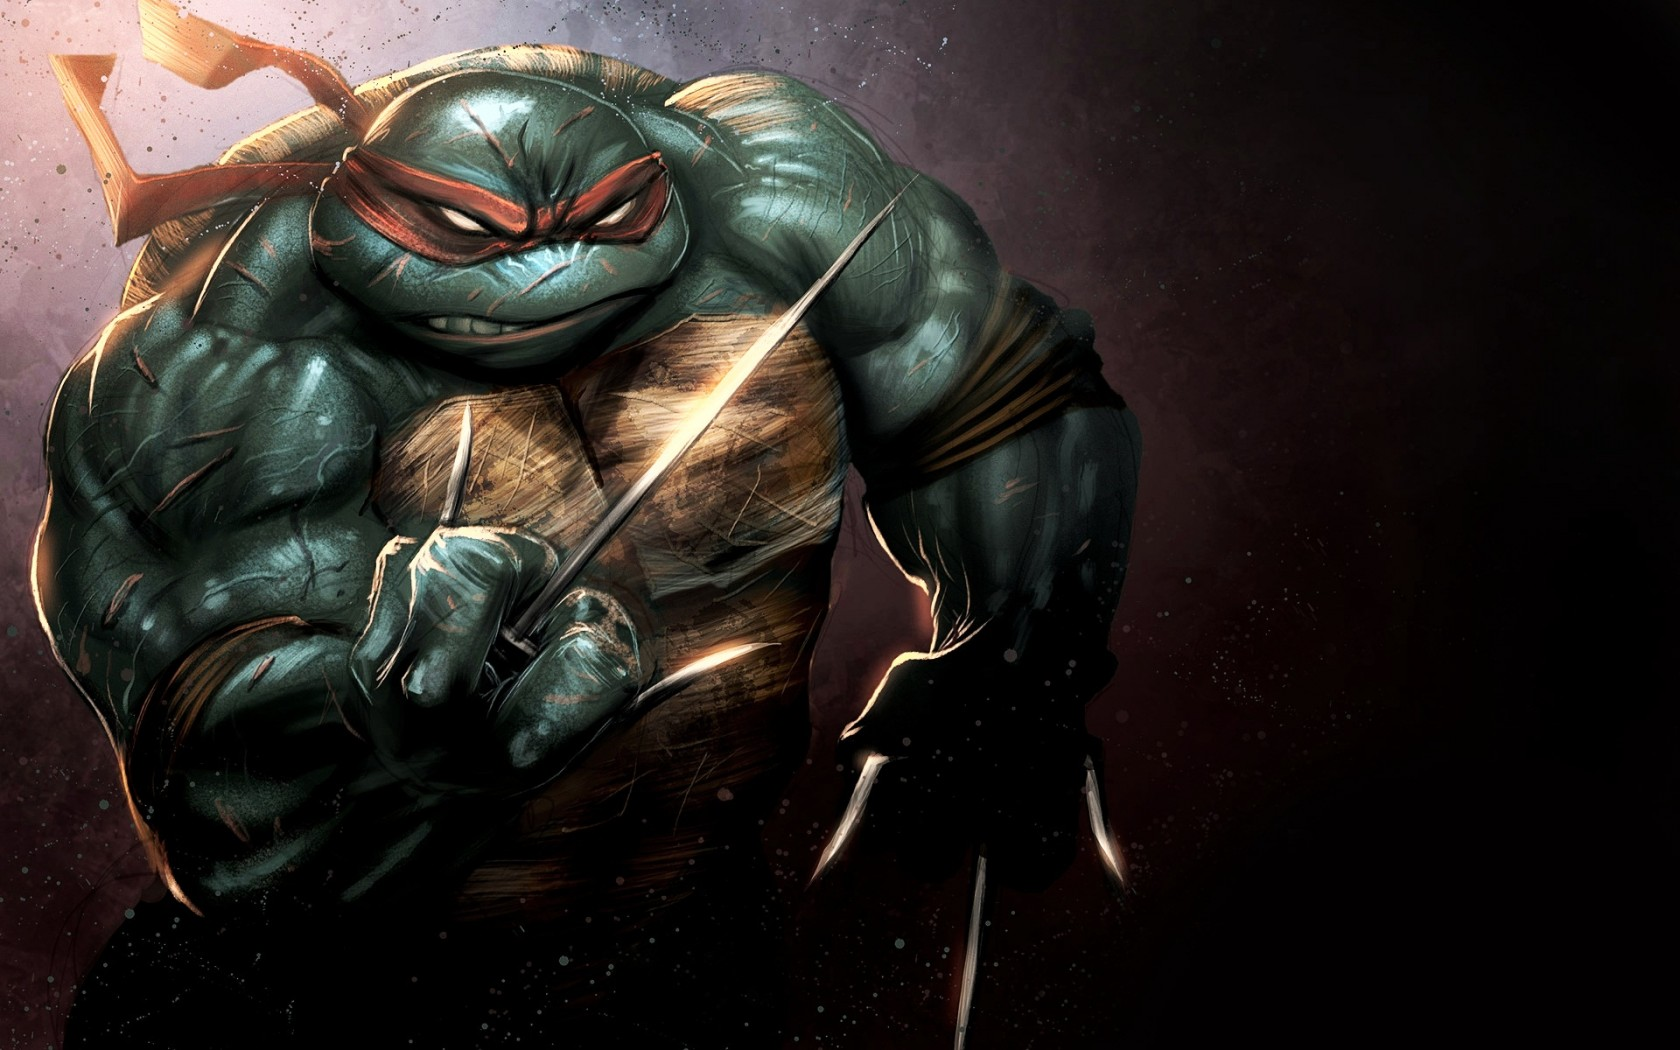 Cute Wallpaper 1366x768 Raphael Teenage Mutant Ninja Turtles Wallpapers Hd